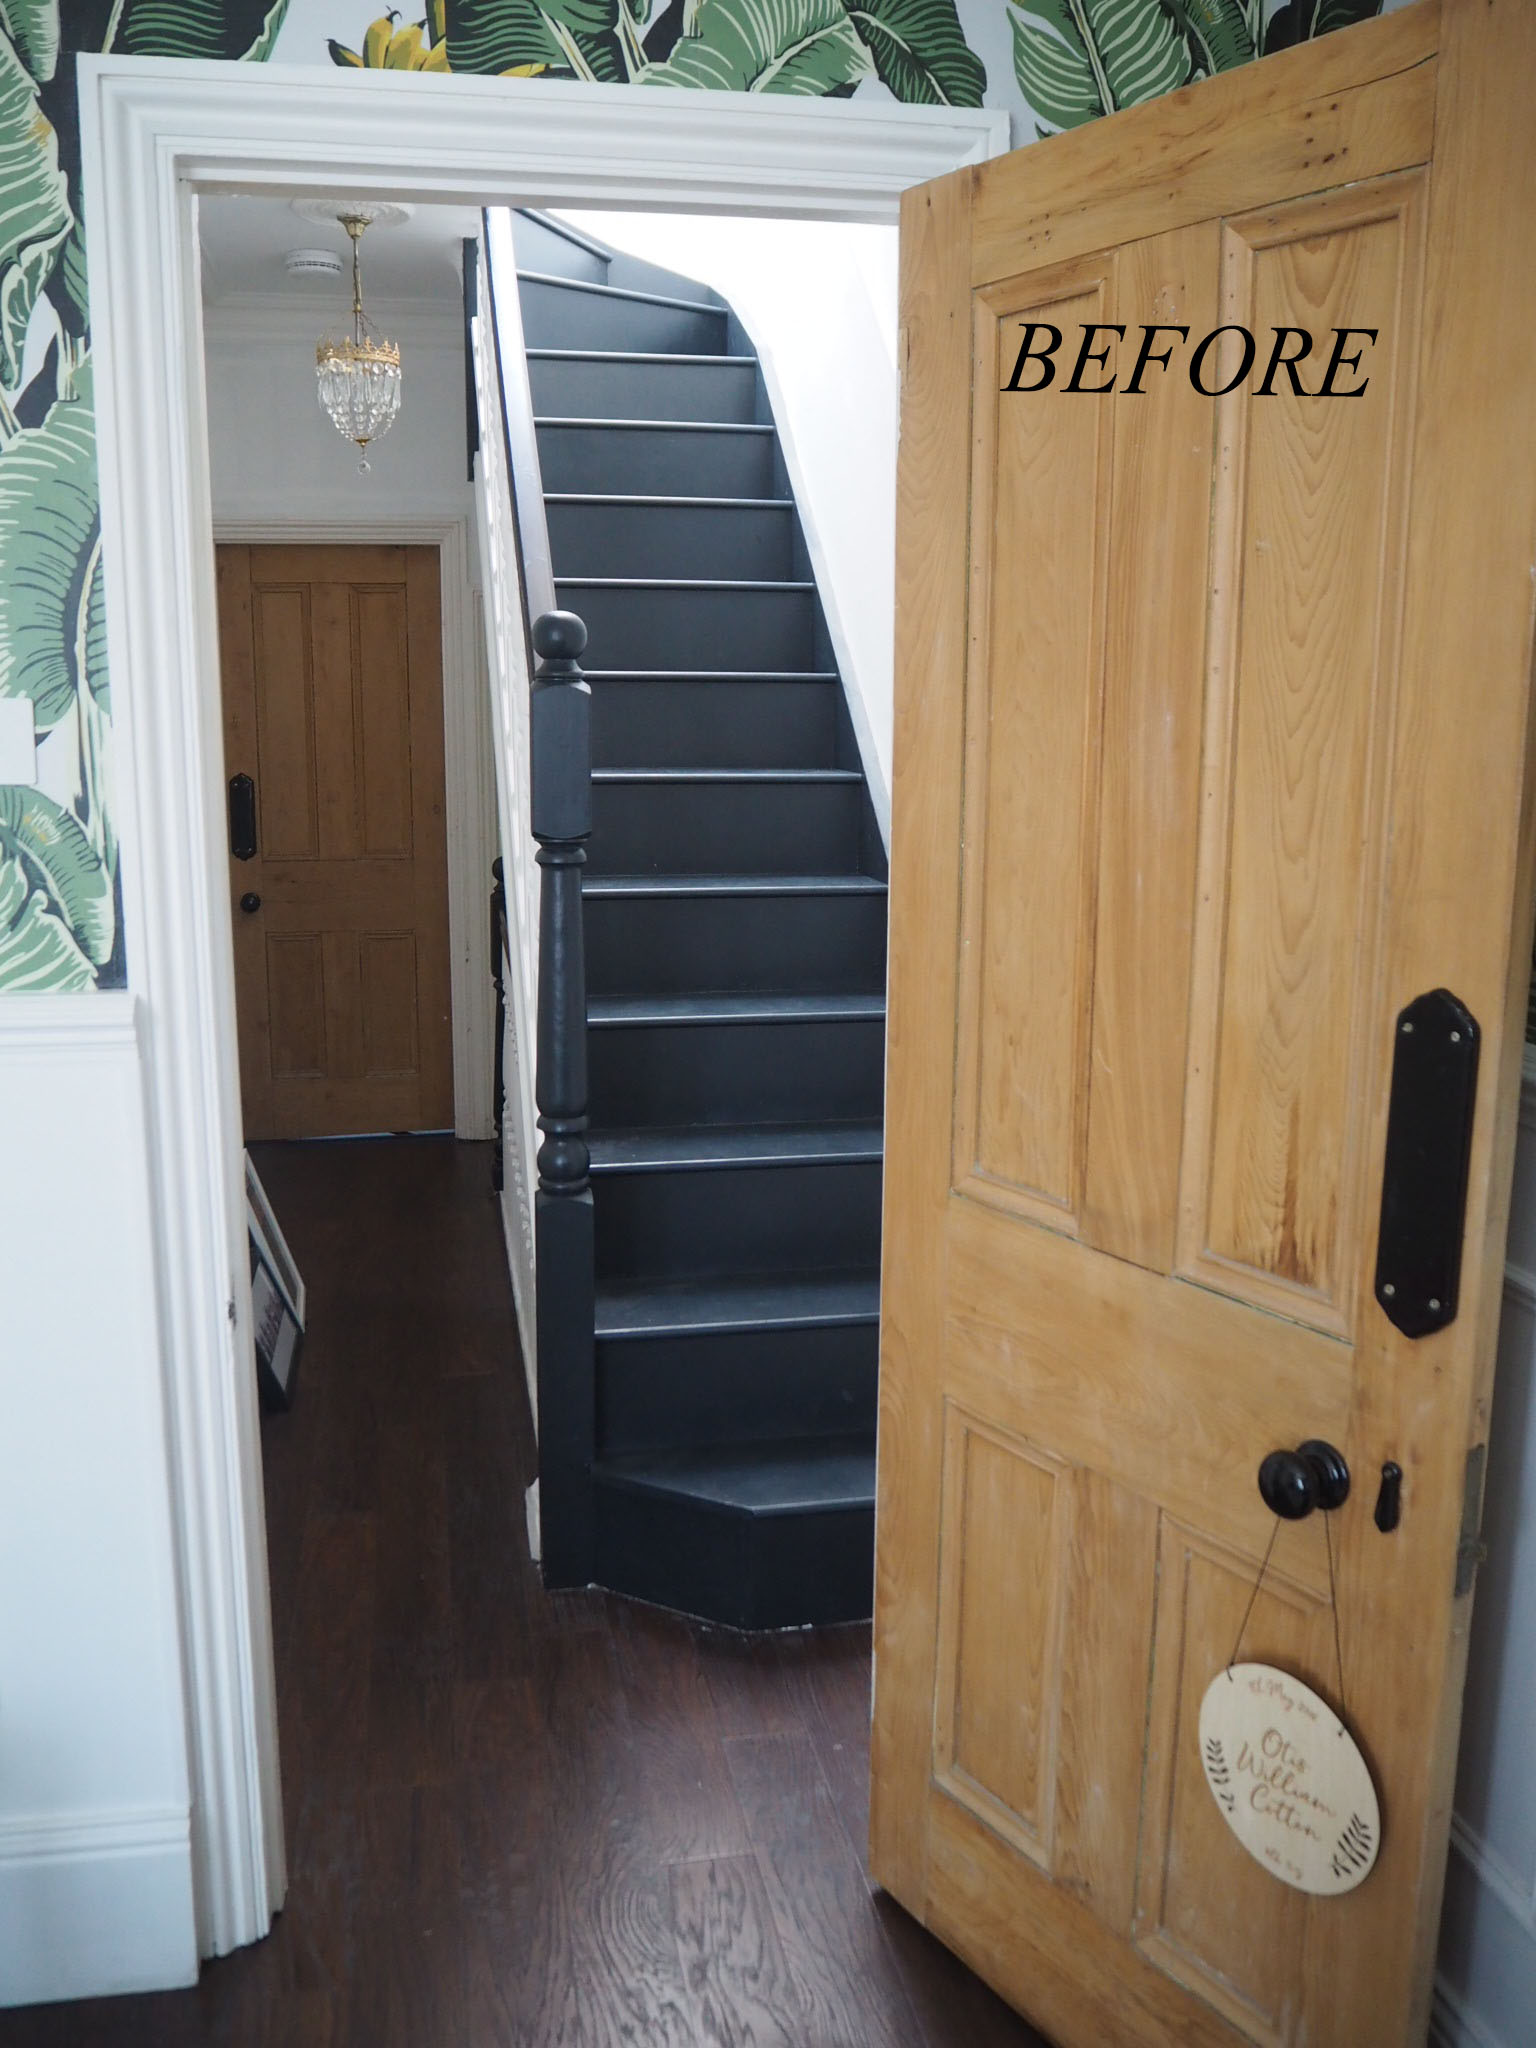 The second set of stairs leading to the loft bedrooms.